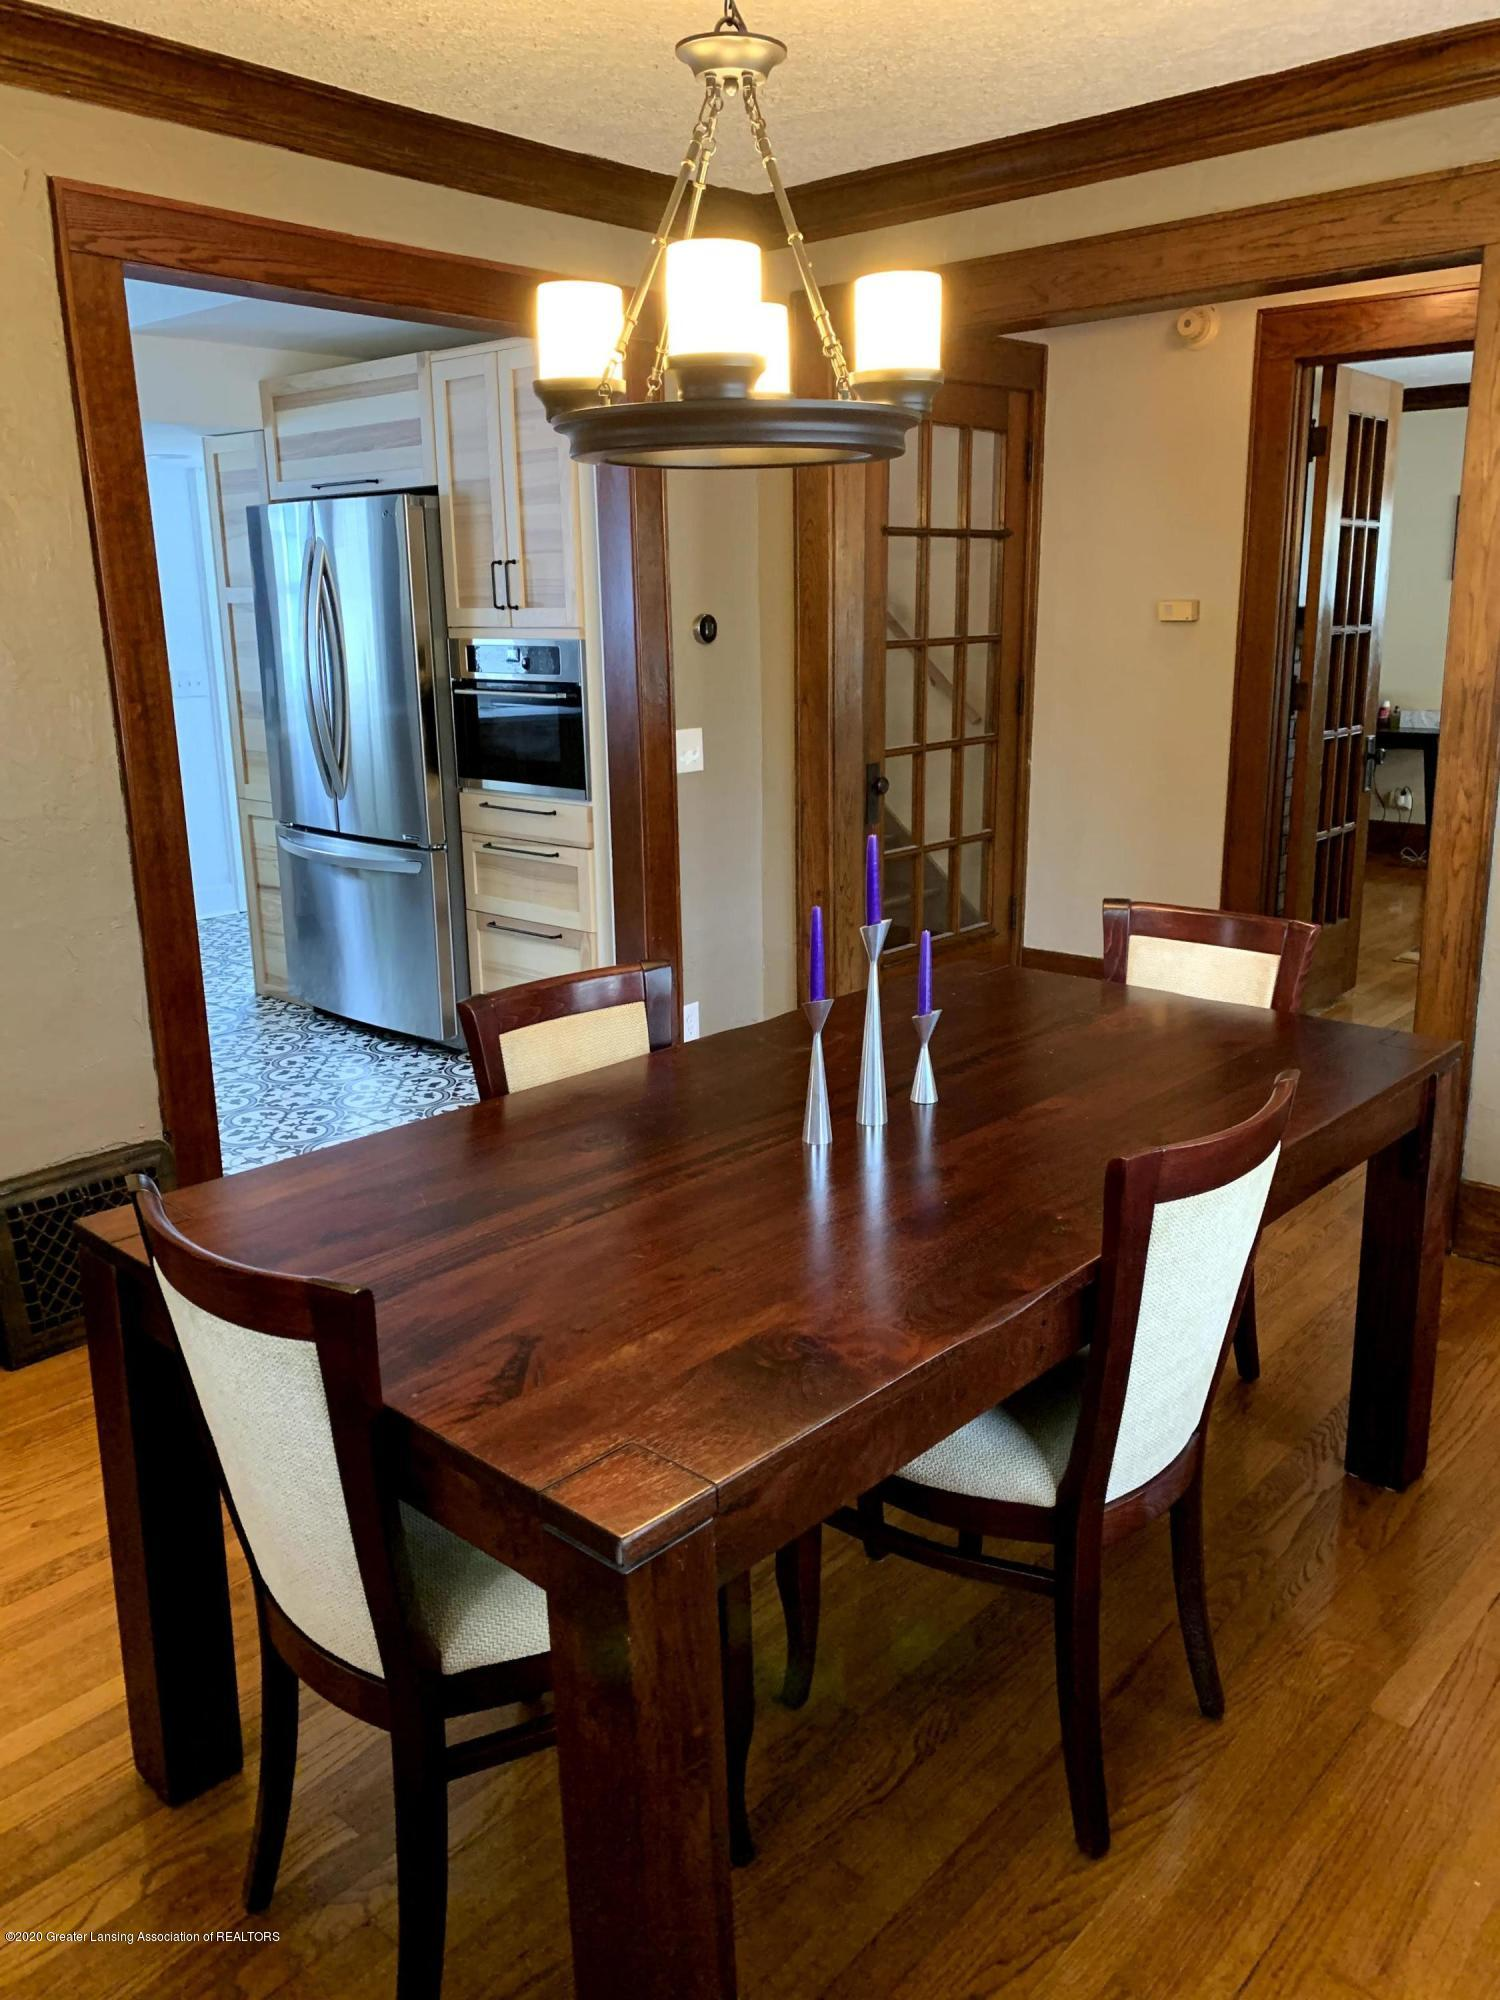 523 N Jenison Ave - Dining room - 9